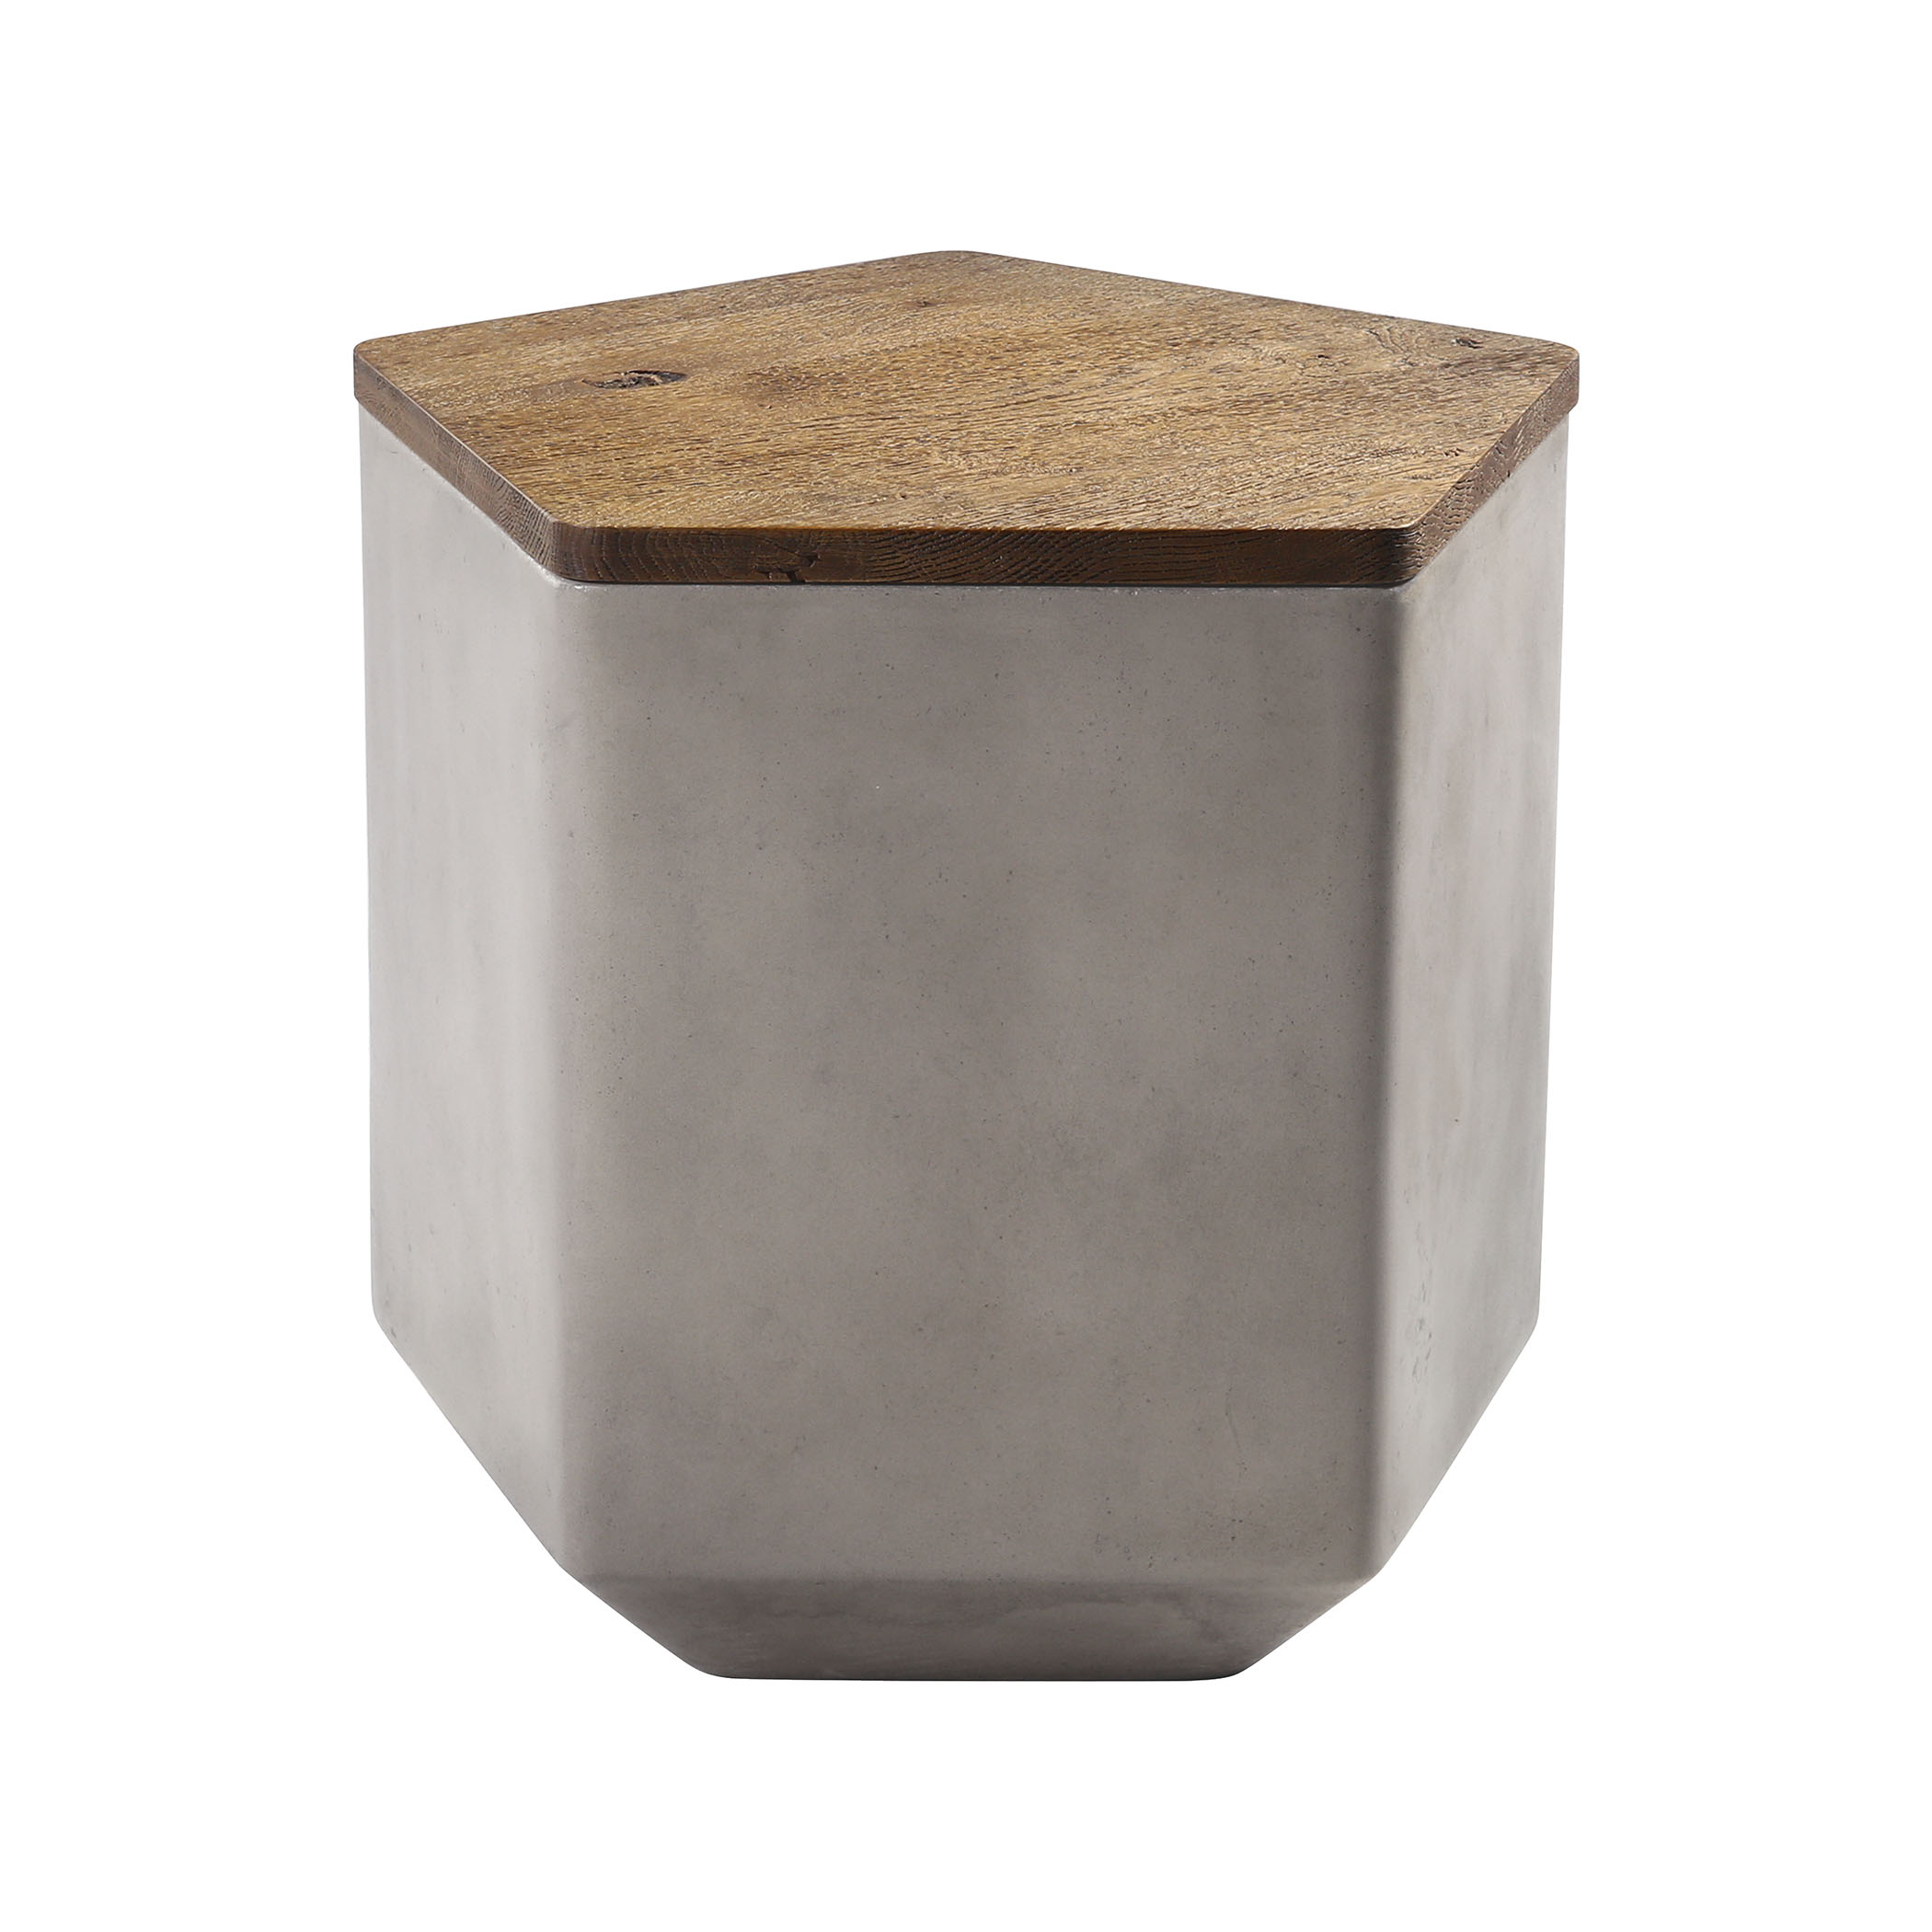 Tay Storage Bench in Nut Oak and Polished Concrete with Acrylic | Elk Home